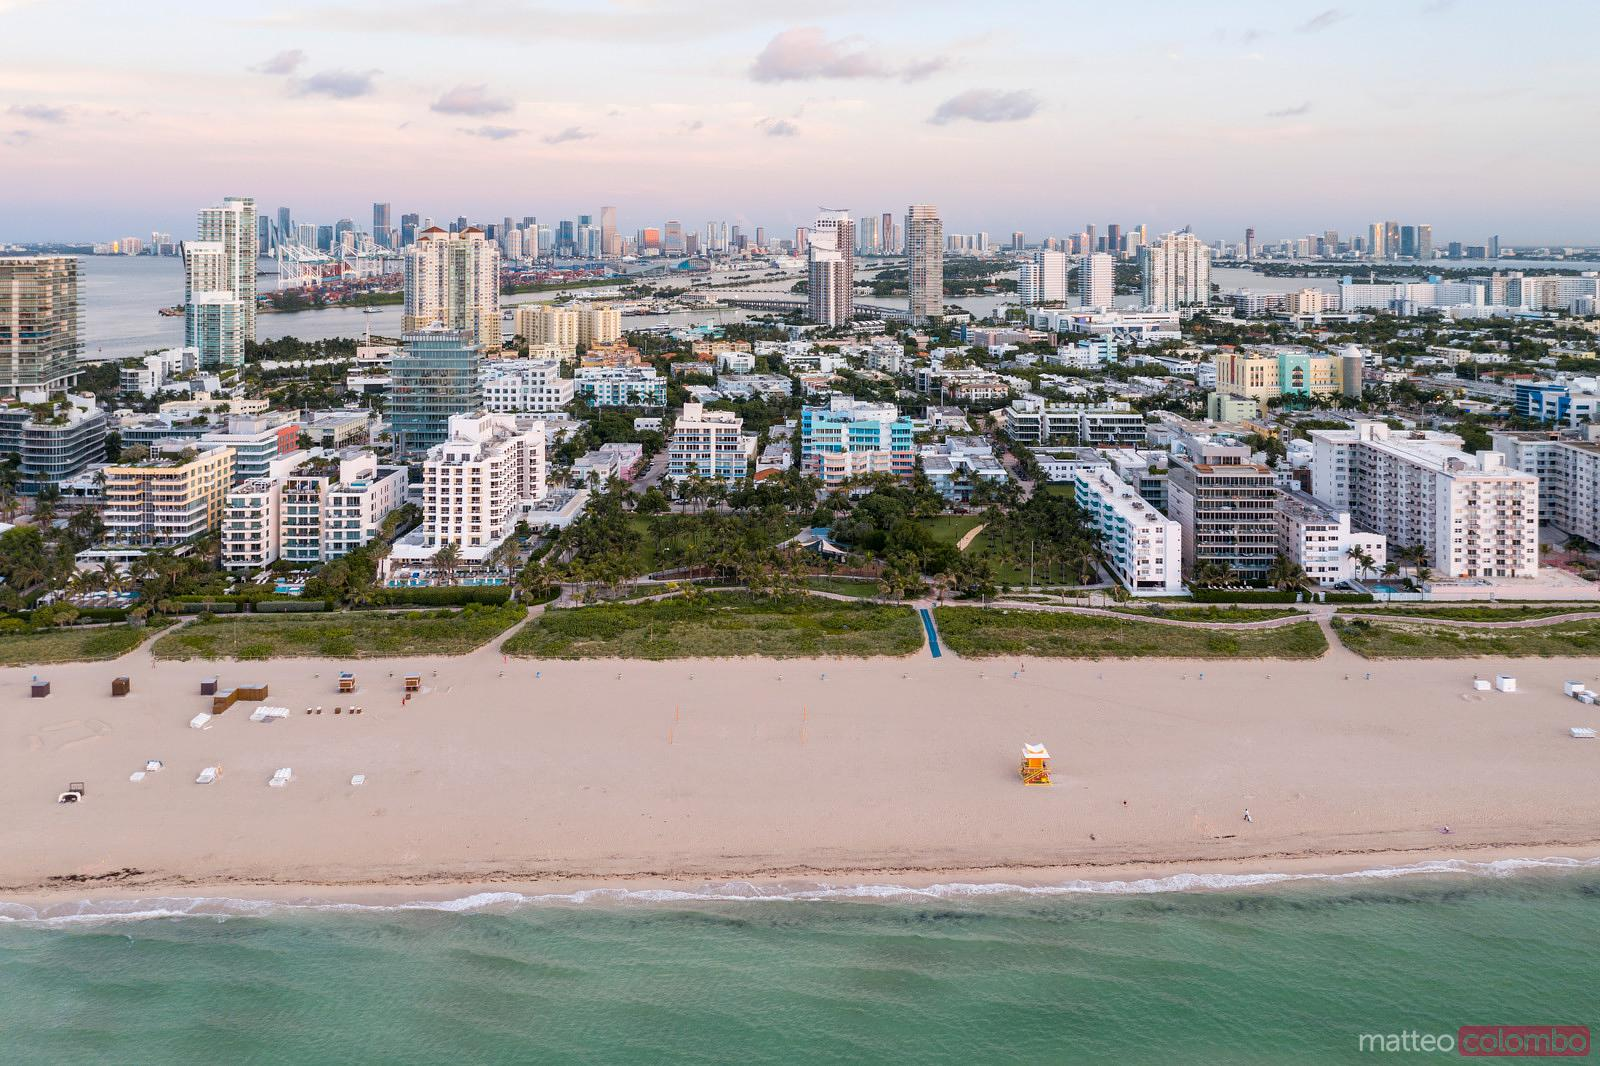 Aerial view of South beach and Miami skyline  at sunset